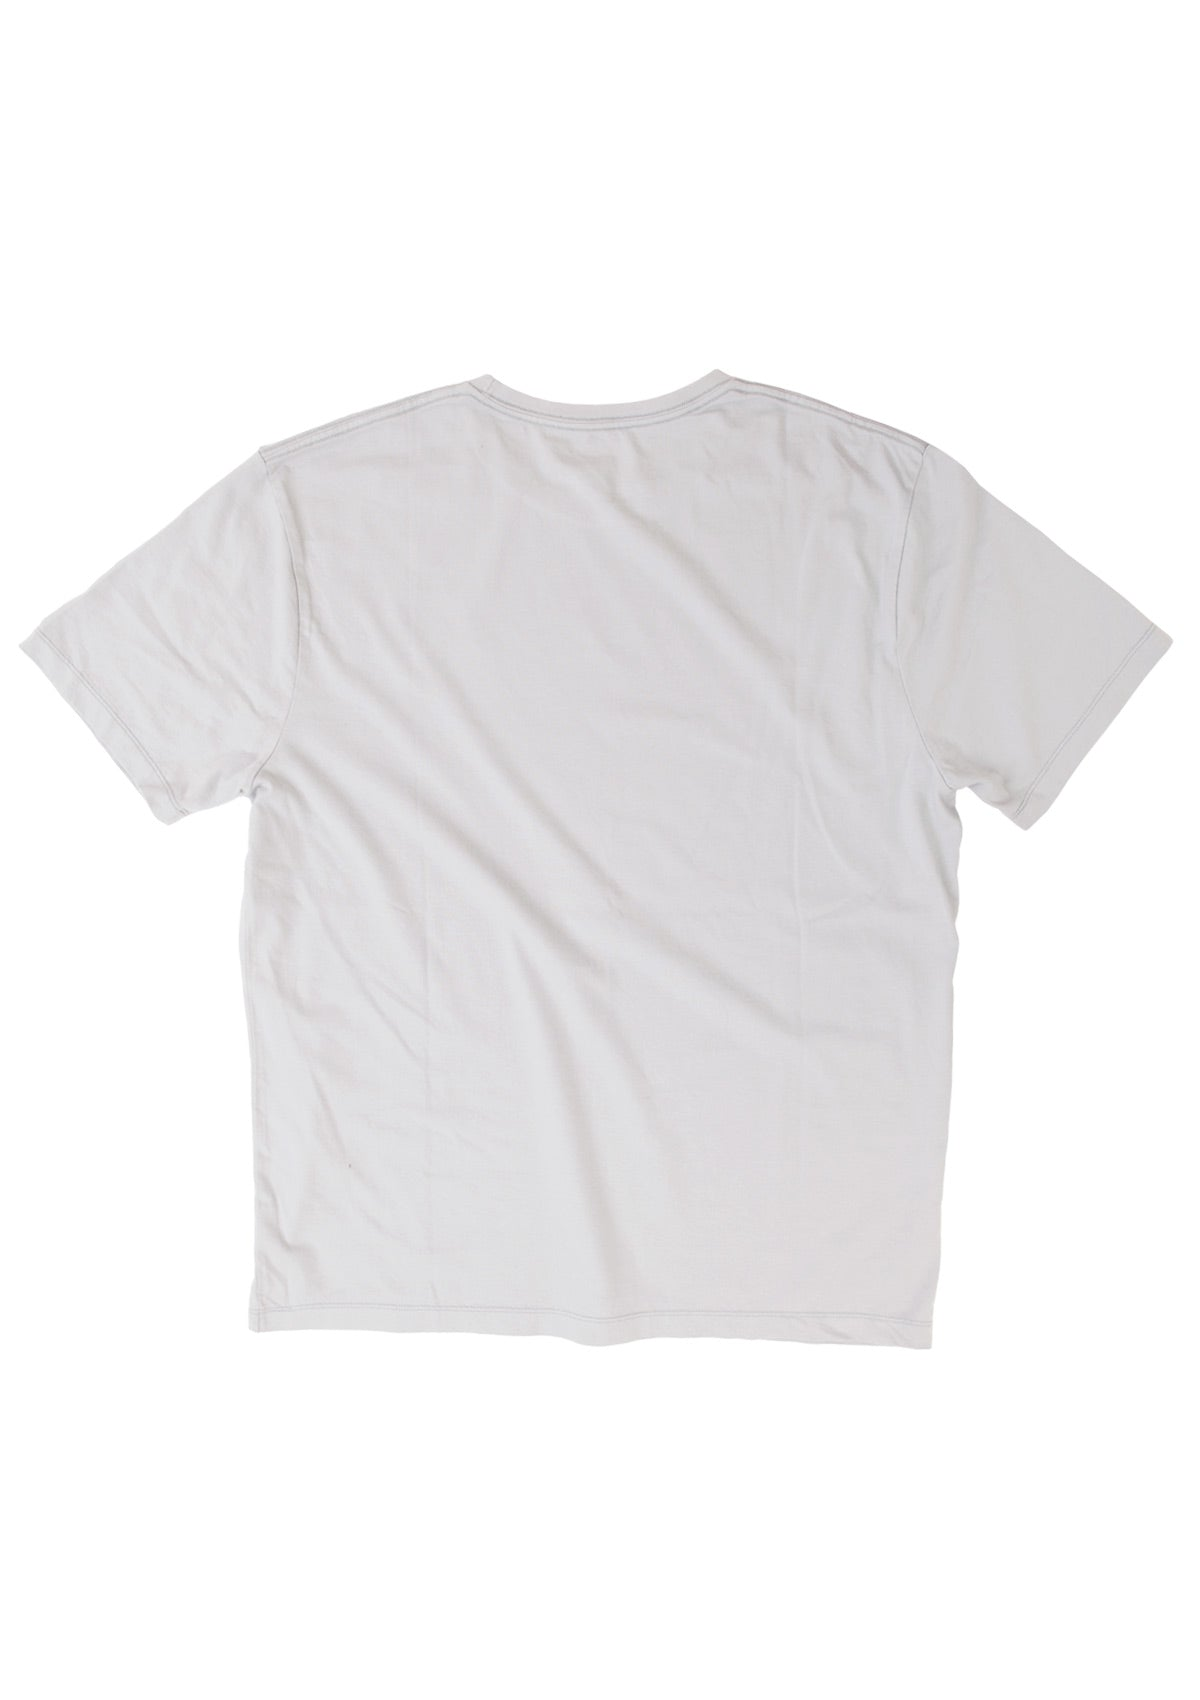 needessentials organic cotton t-shirt white